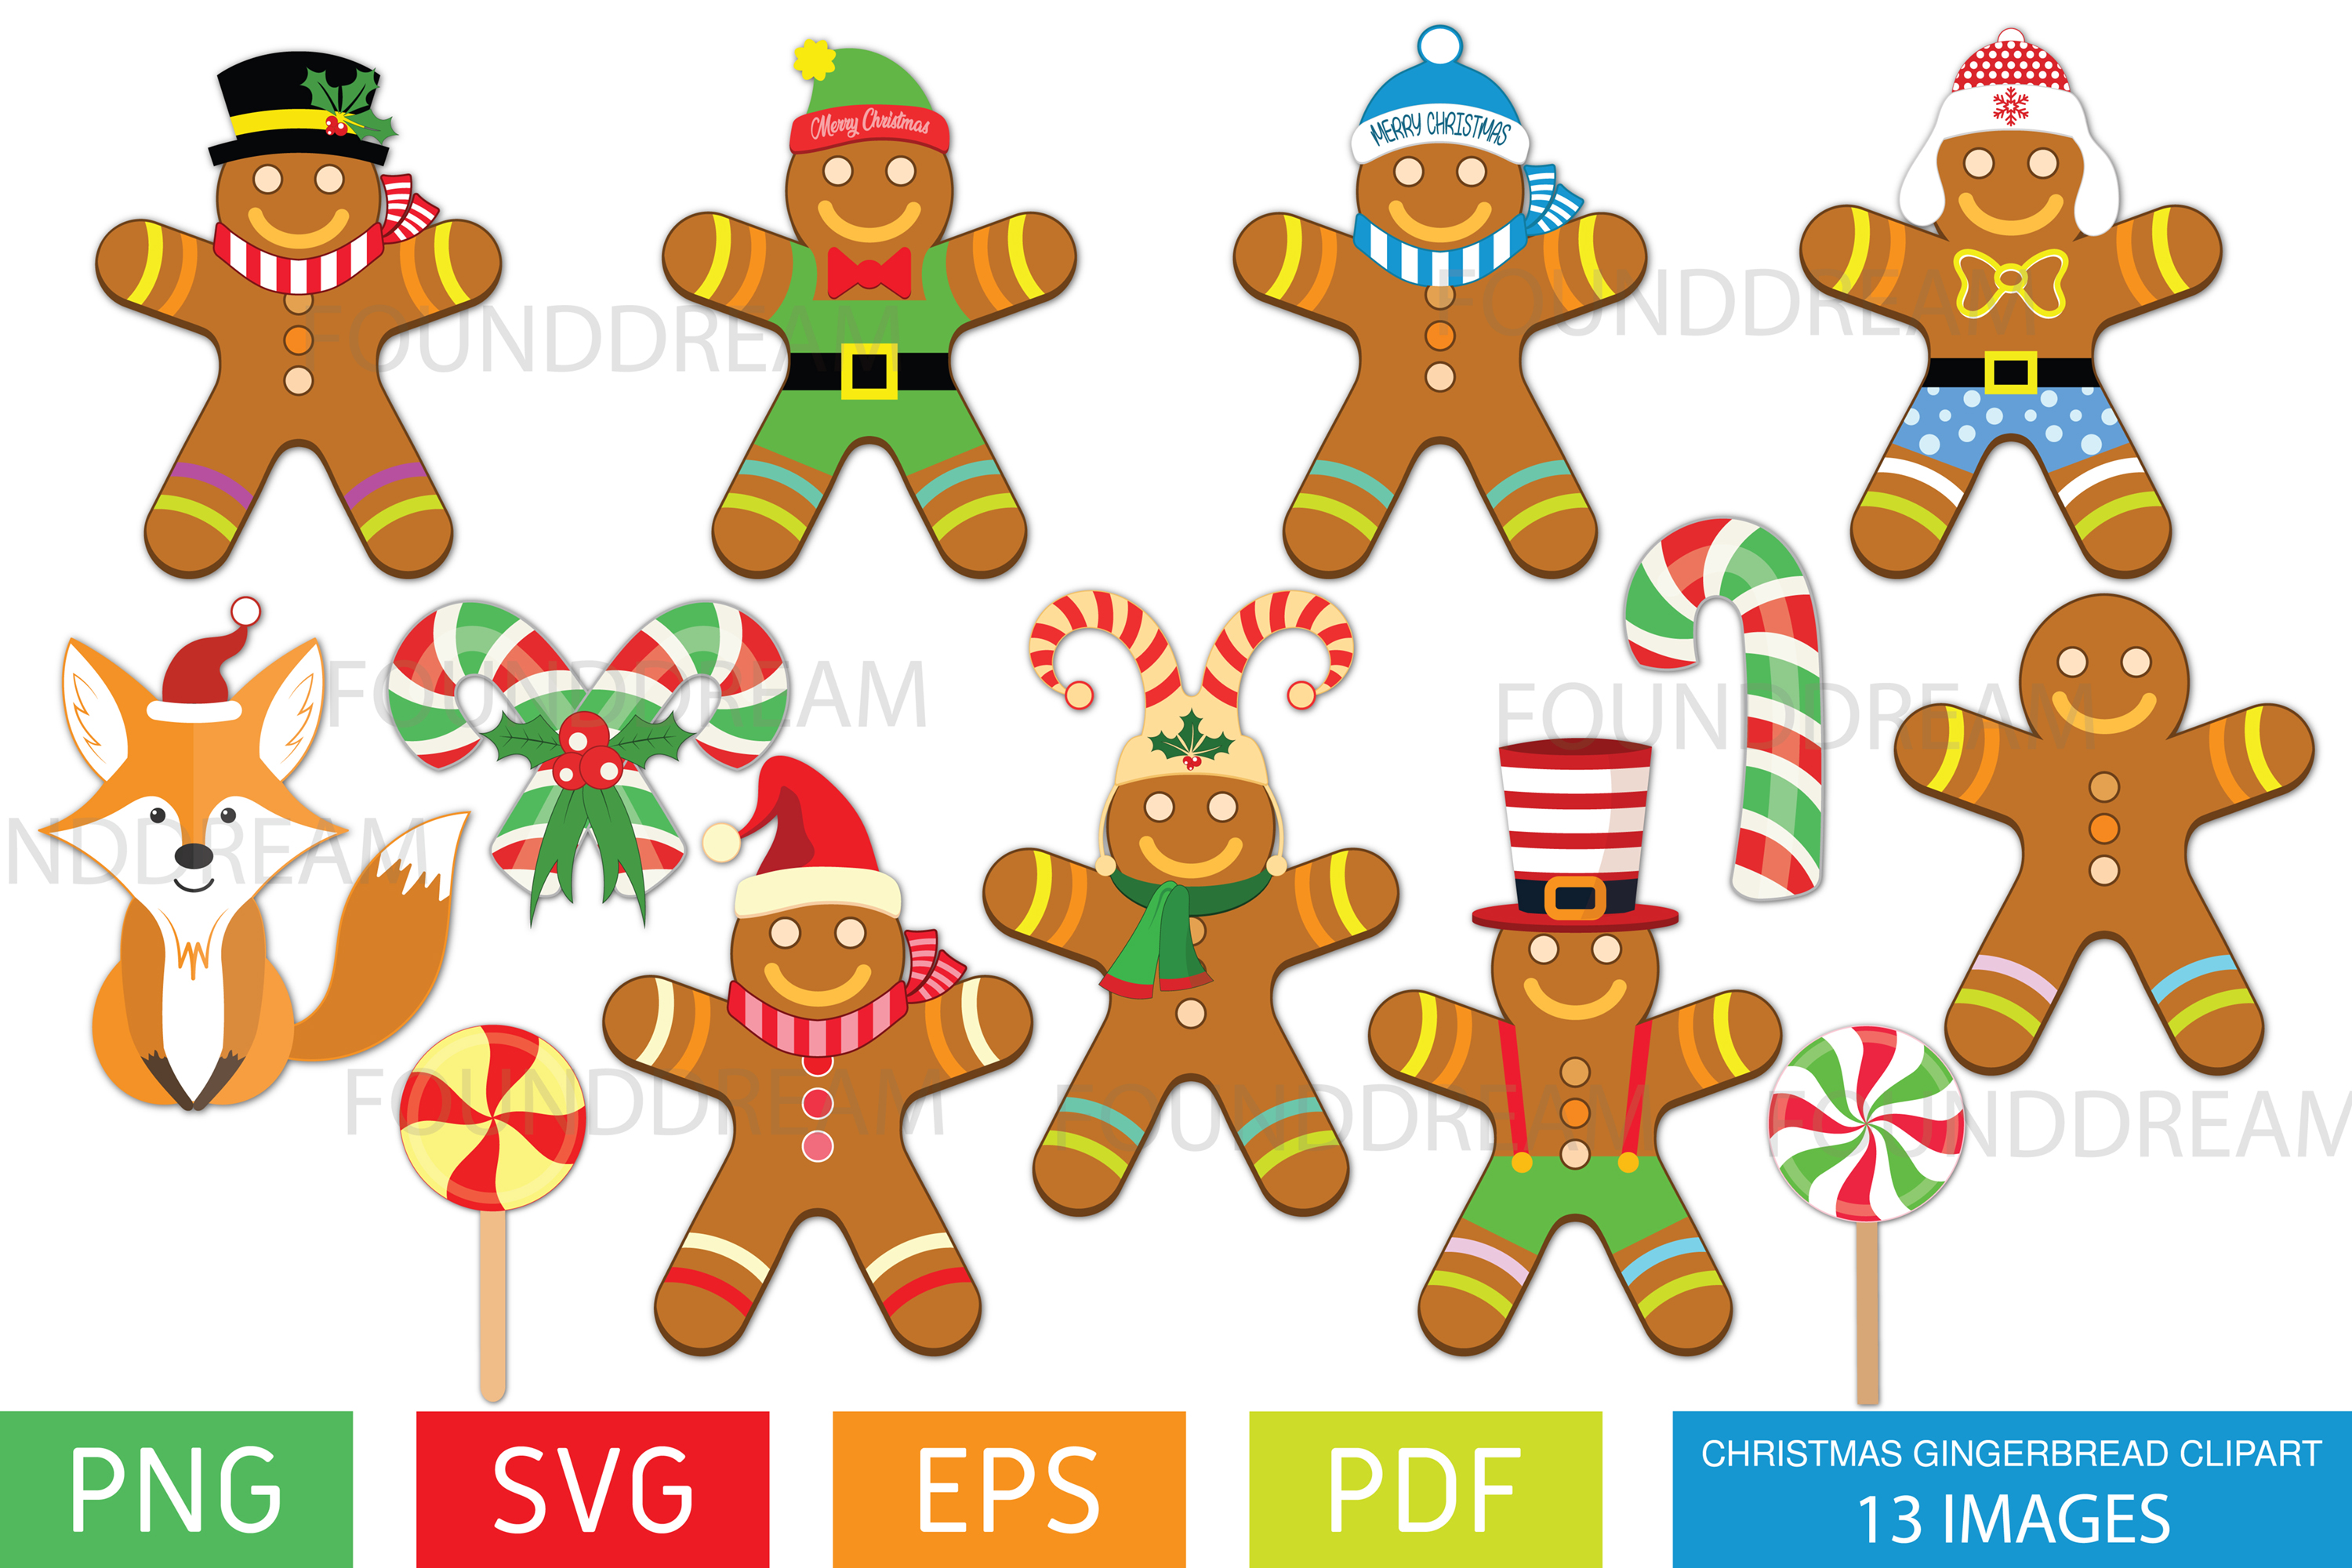 Christmas Gingerbread Clip art.